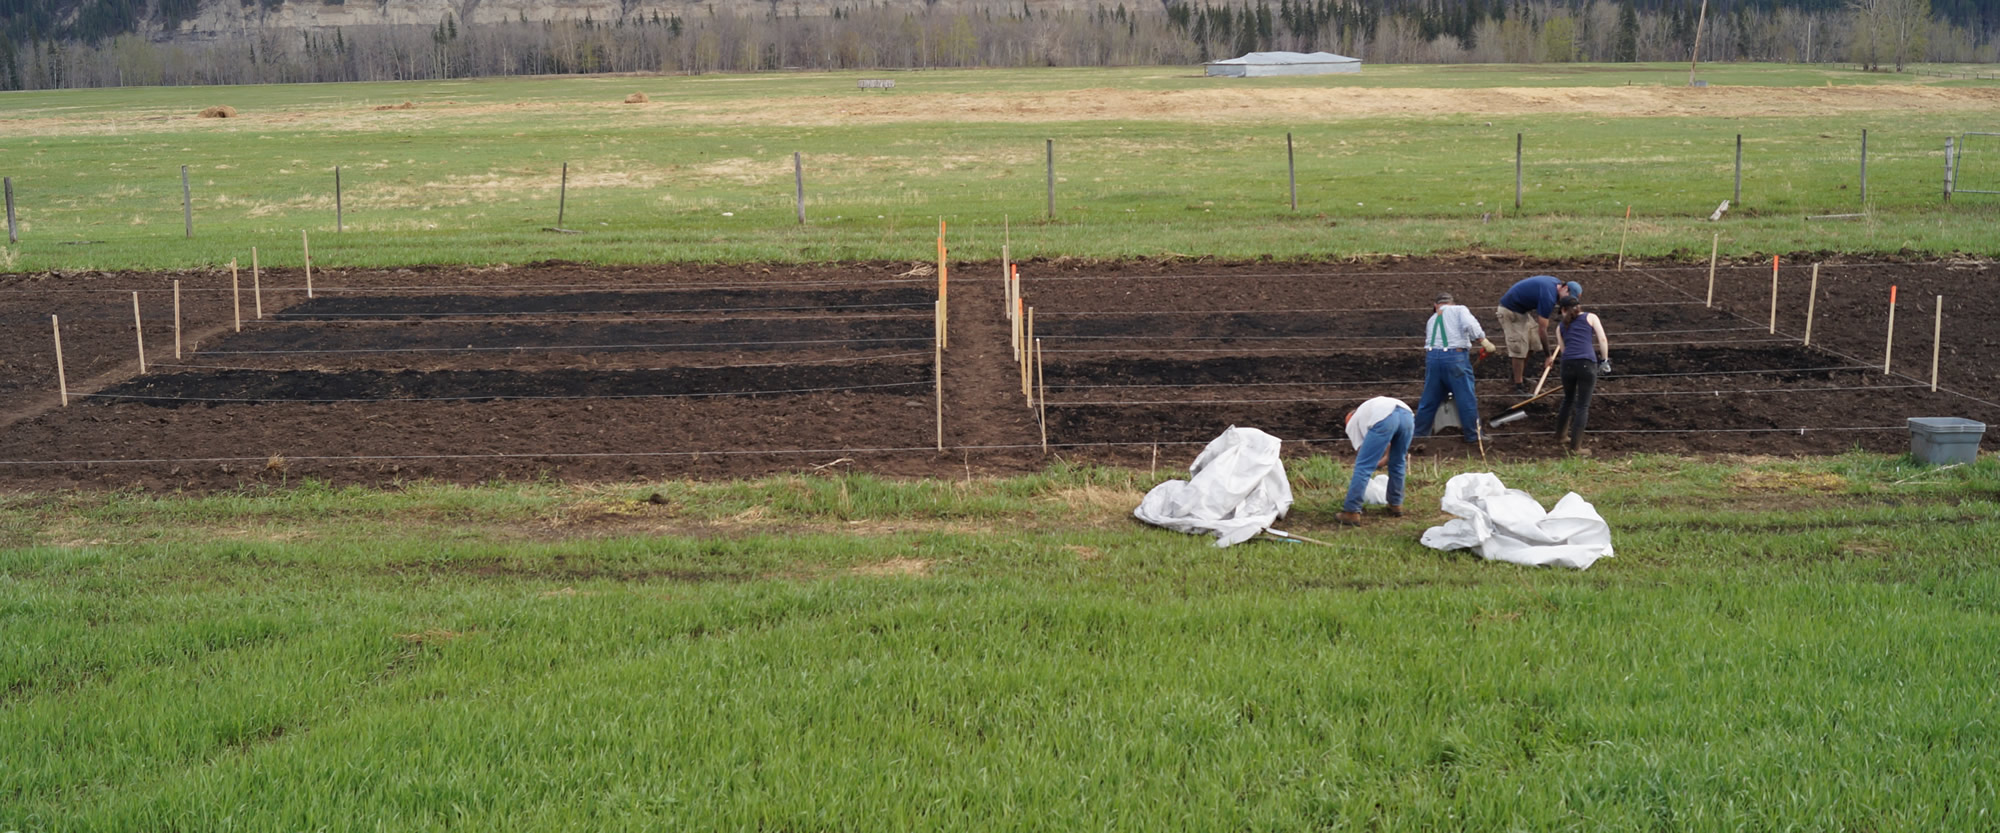 The biochar being applied to the field prior to incorporation and seeding.